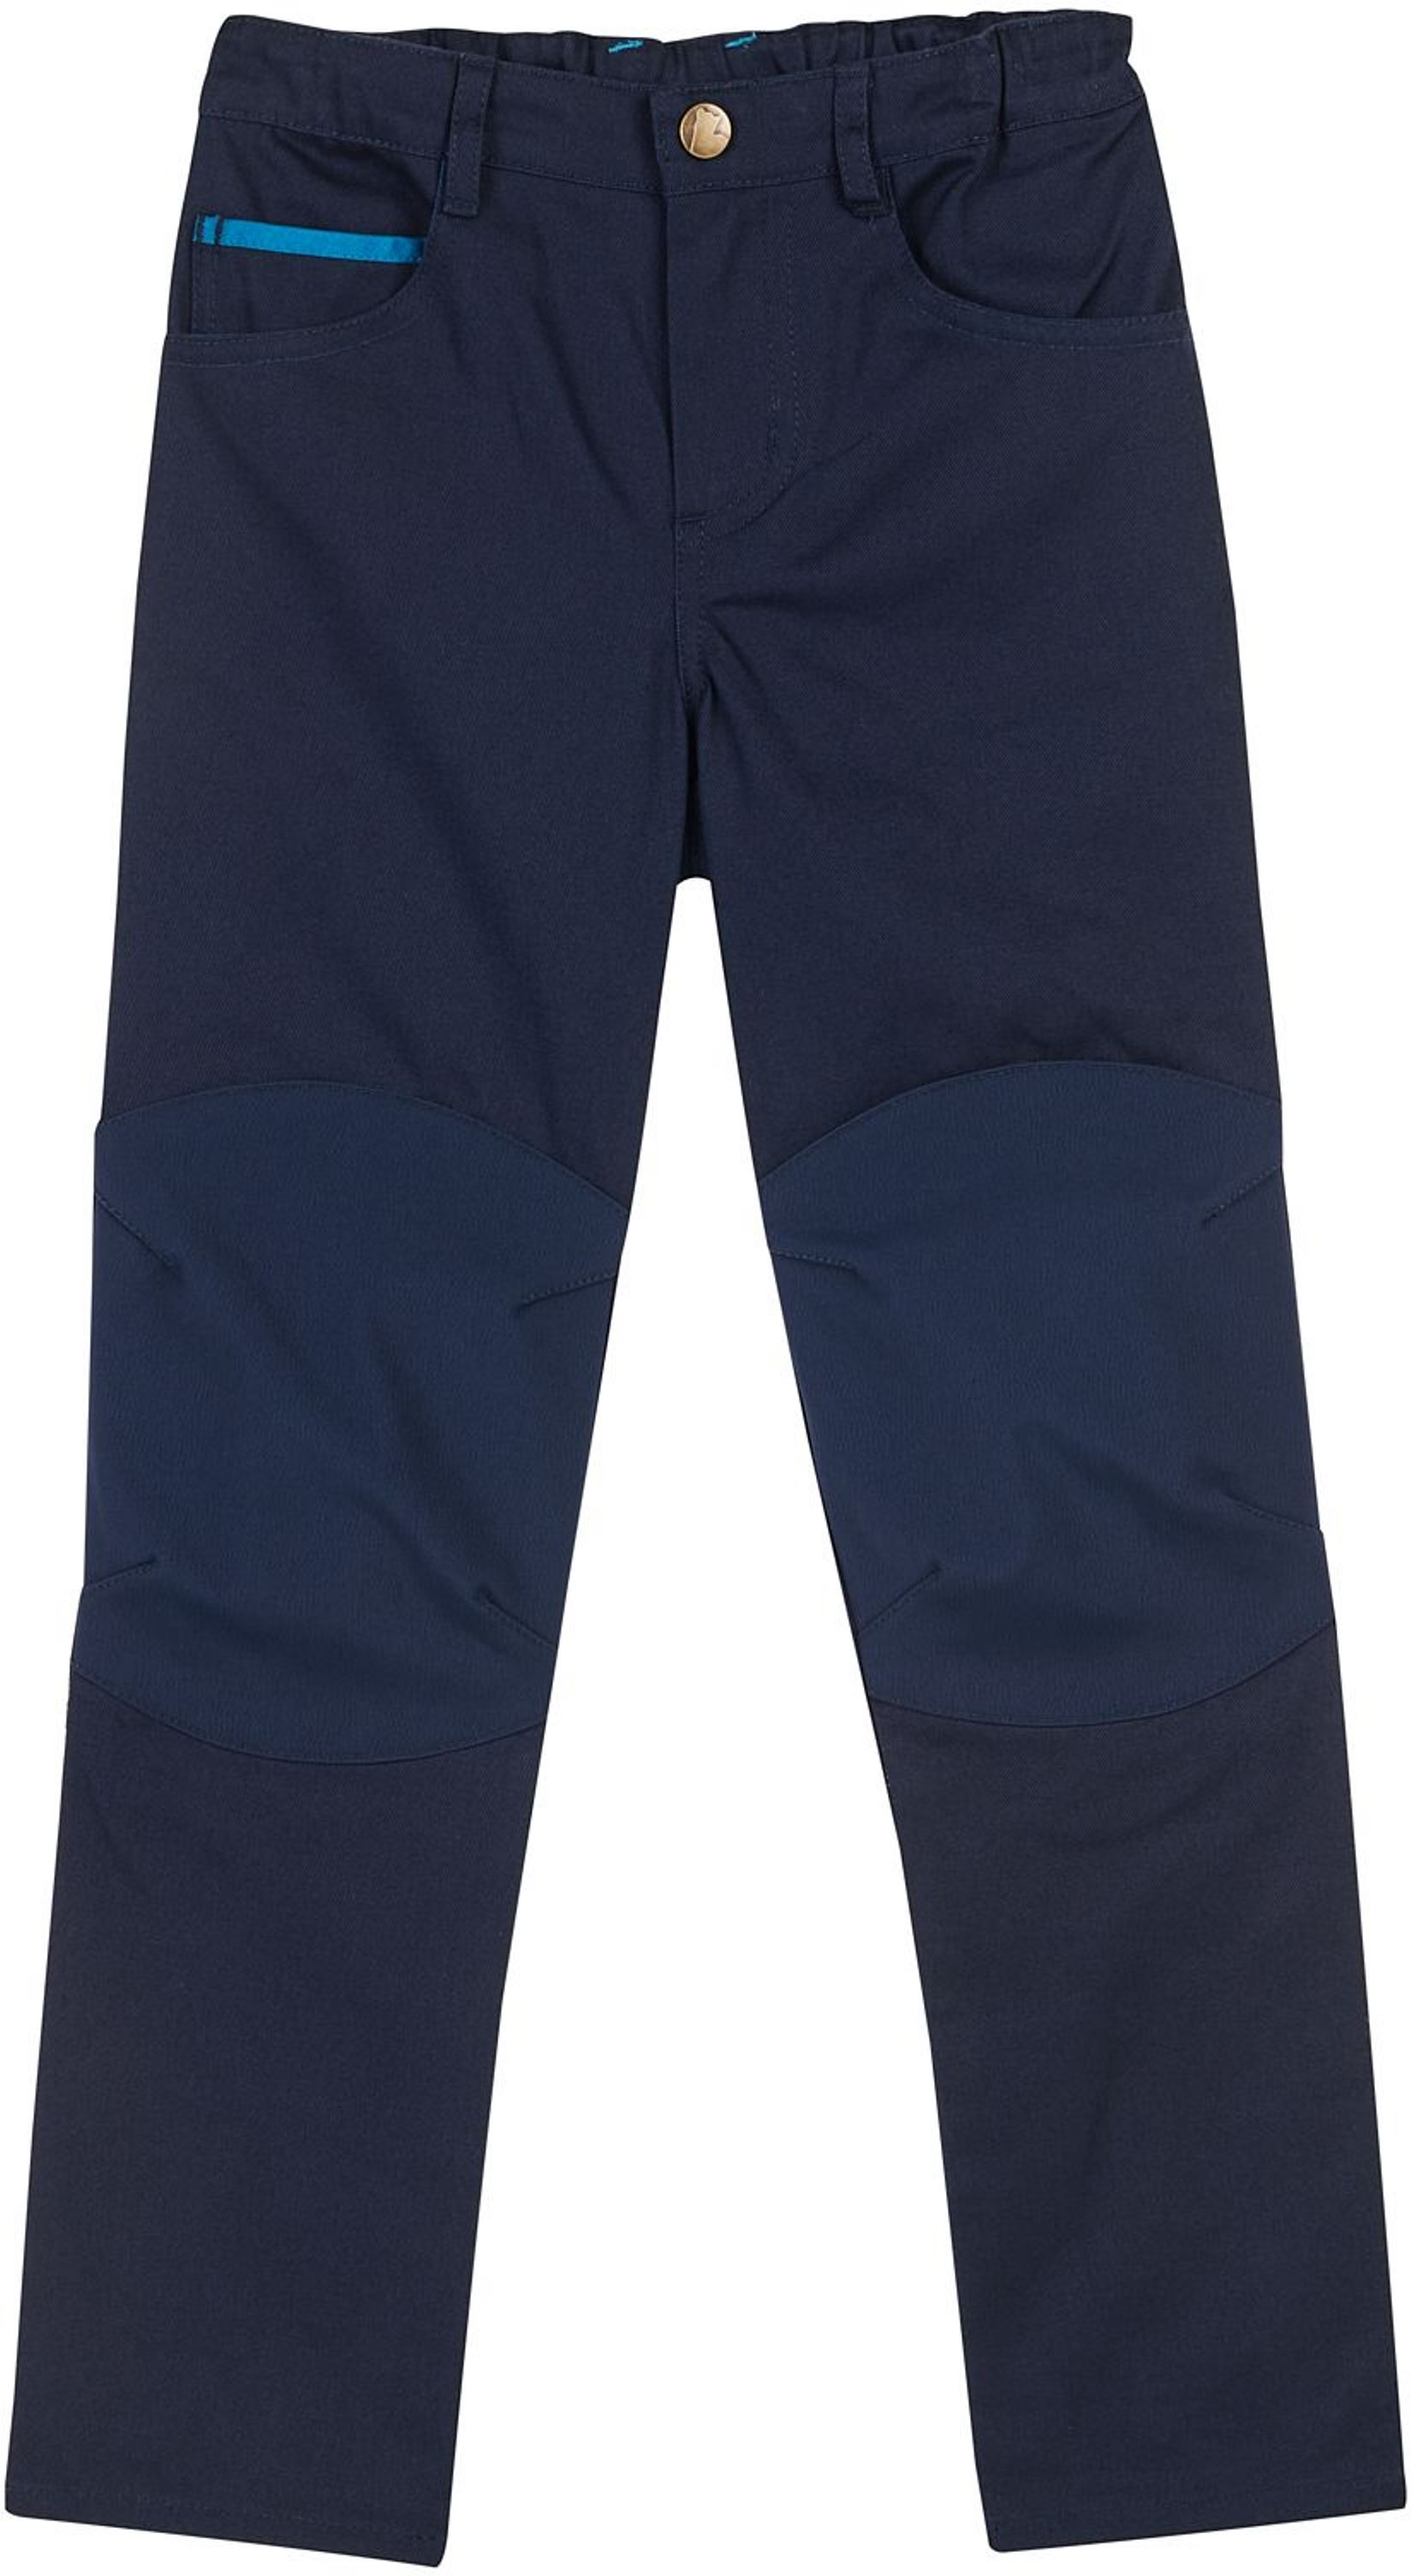 Finkid Hose KUUSI CANVAS navy